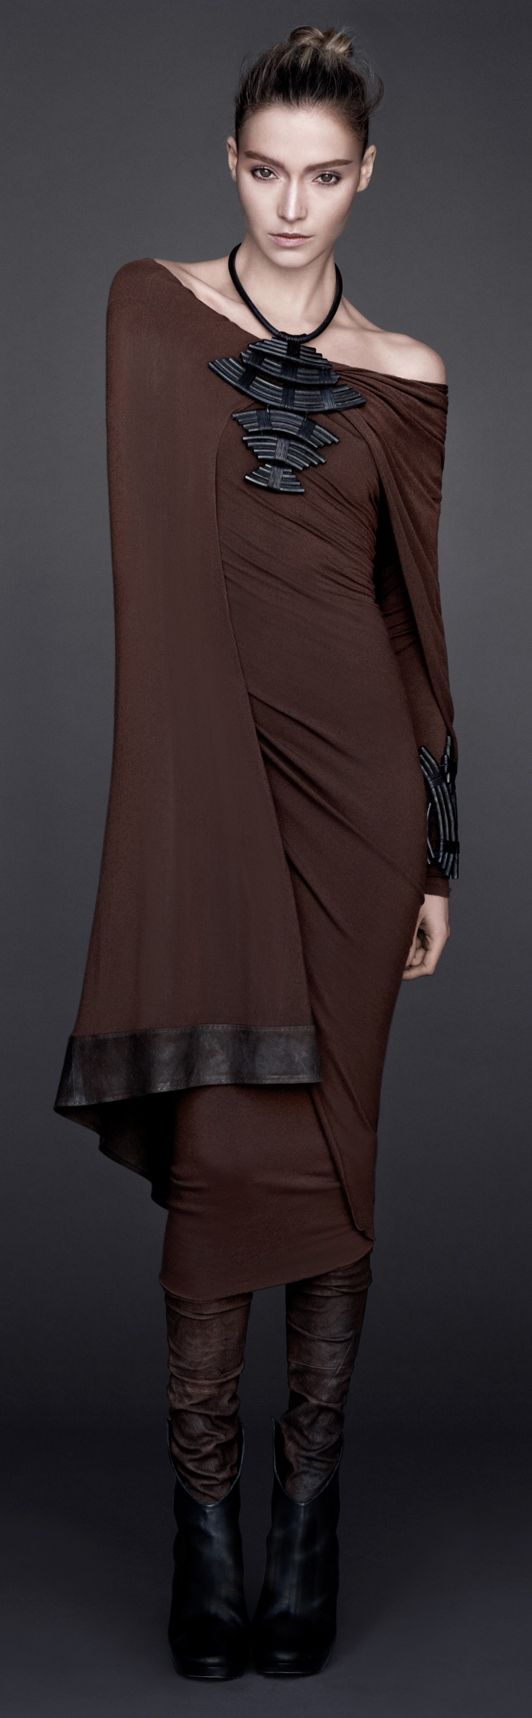 brown dress @roressclothes closet ideas #women fashion outfit #clothing style apparel